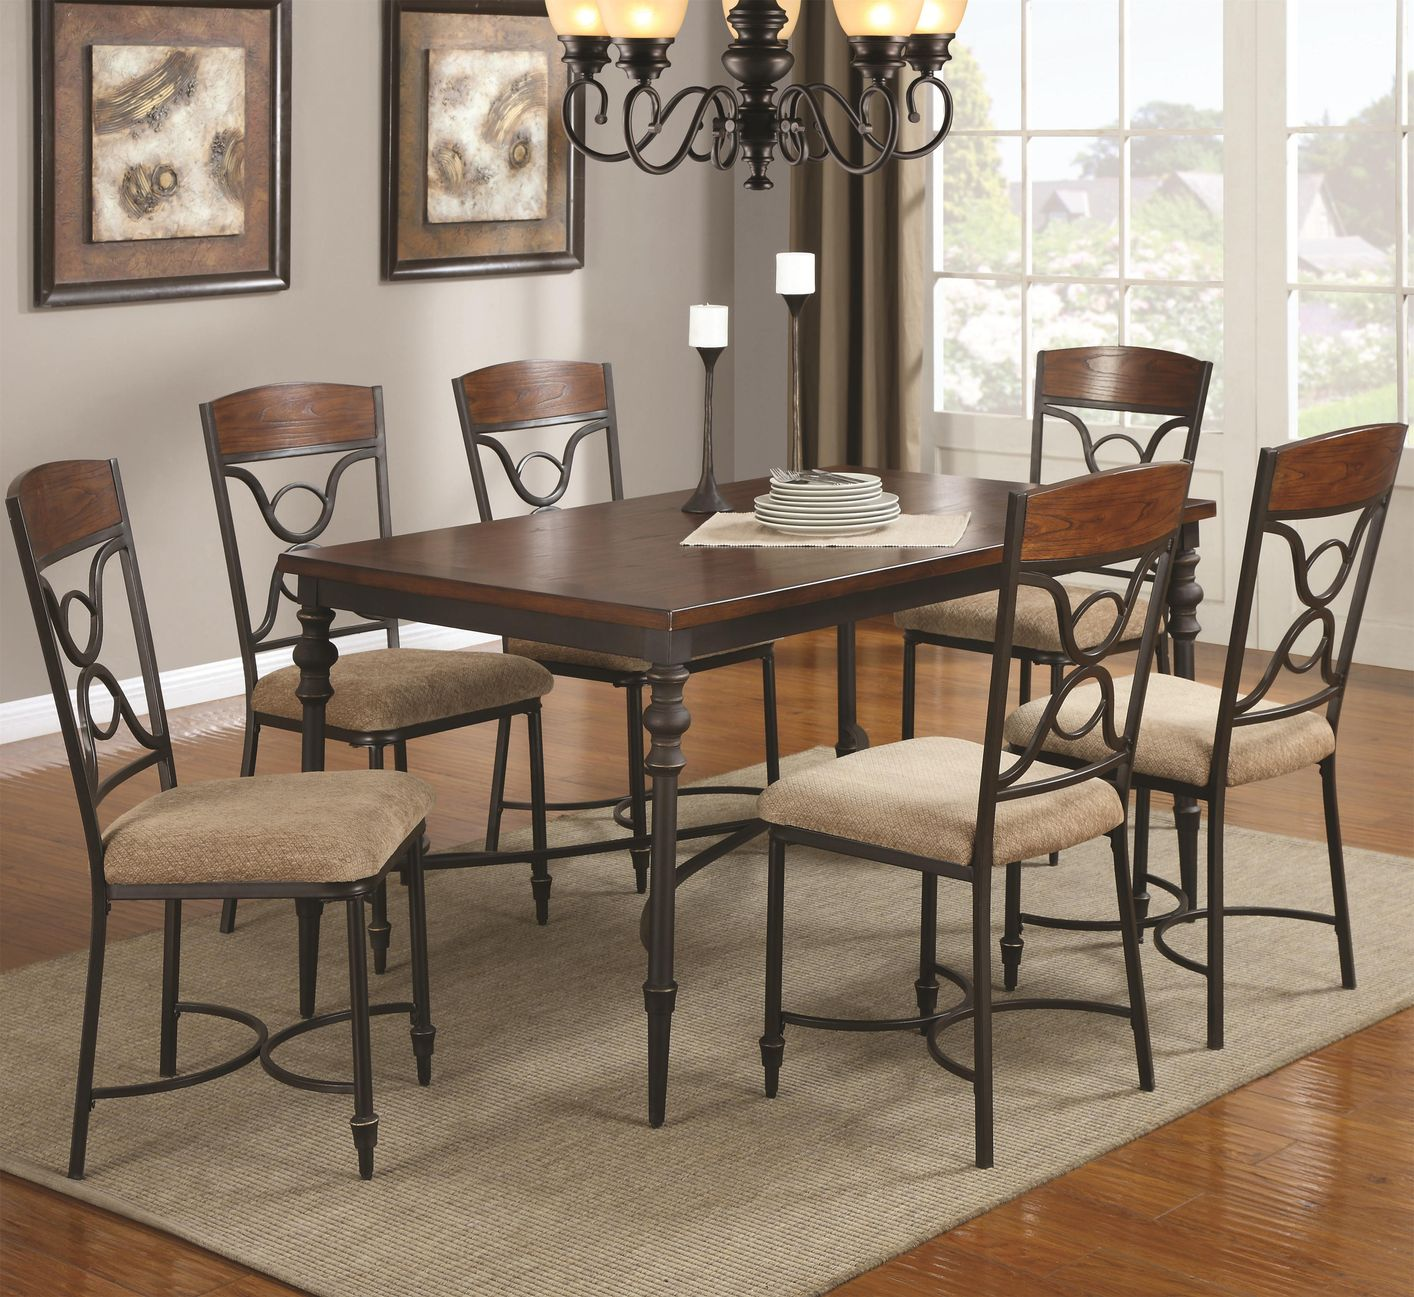 Klaus Cherry Metal And Wood Dining Table Set Steal A  : klaus cherry metal and wood dining table set 9 from www.stealasofa.com size 1414 x 1297 jpeg 315kB